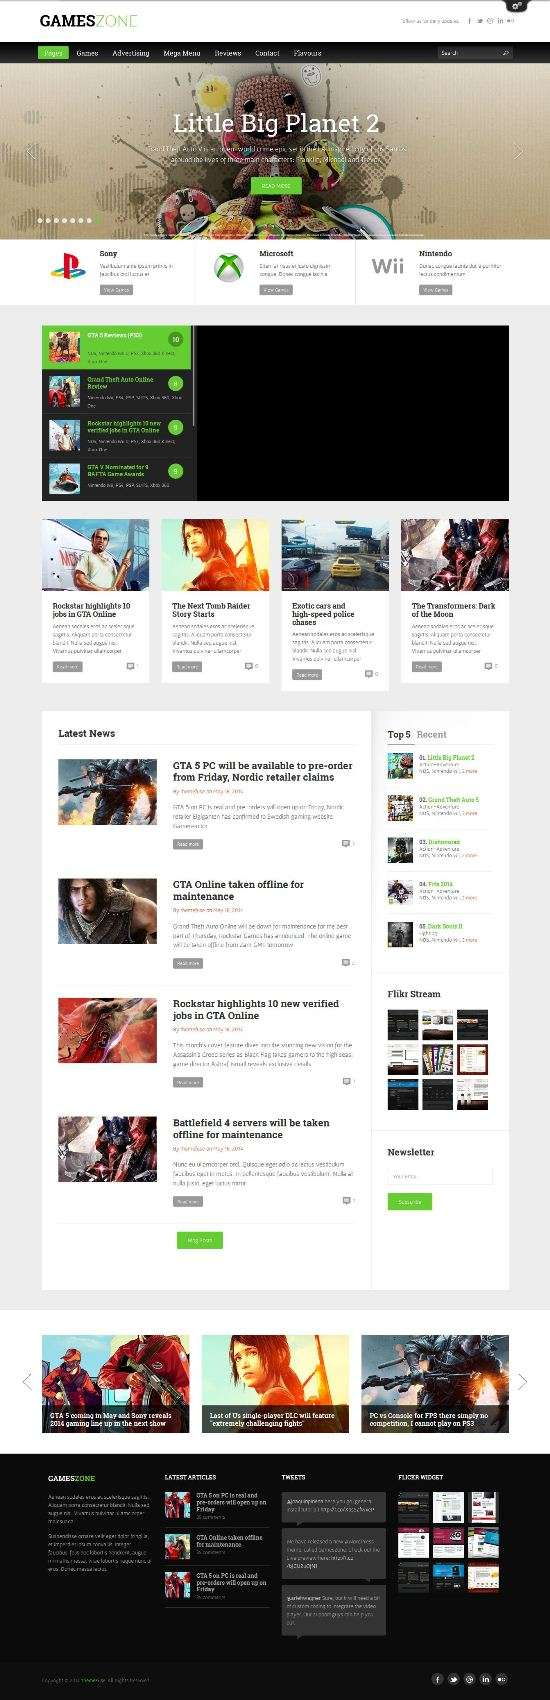 gameszone themefuse avjthemescom 01 - Gameszone WordPress Theme